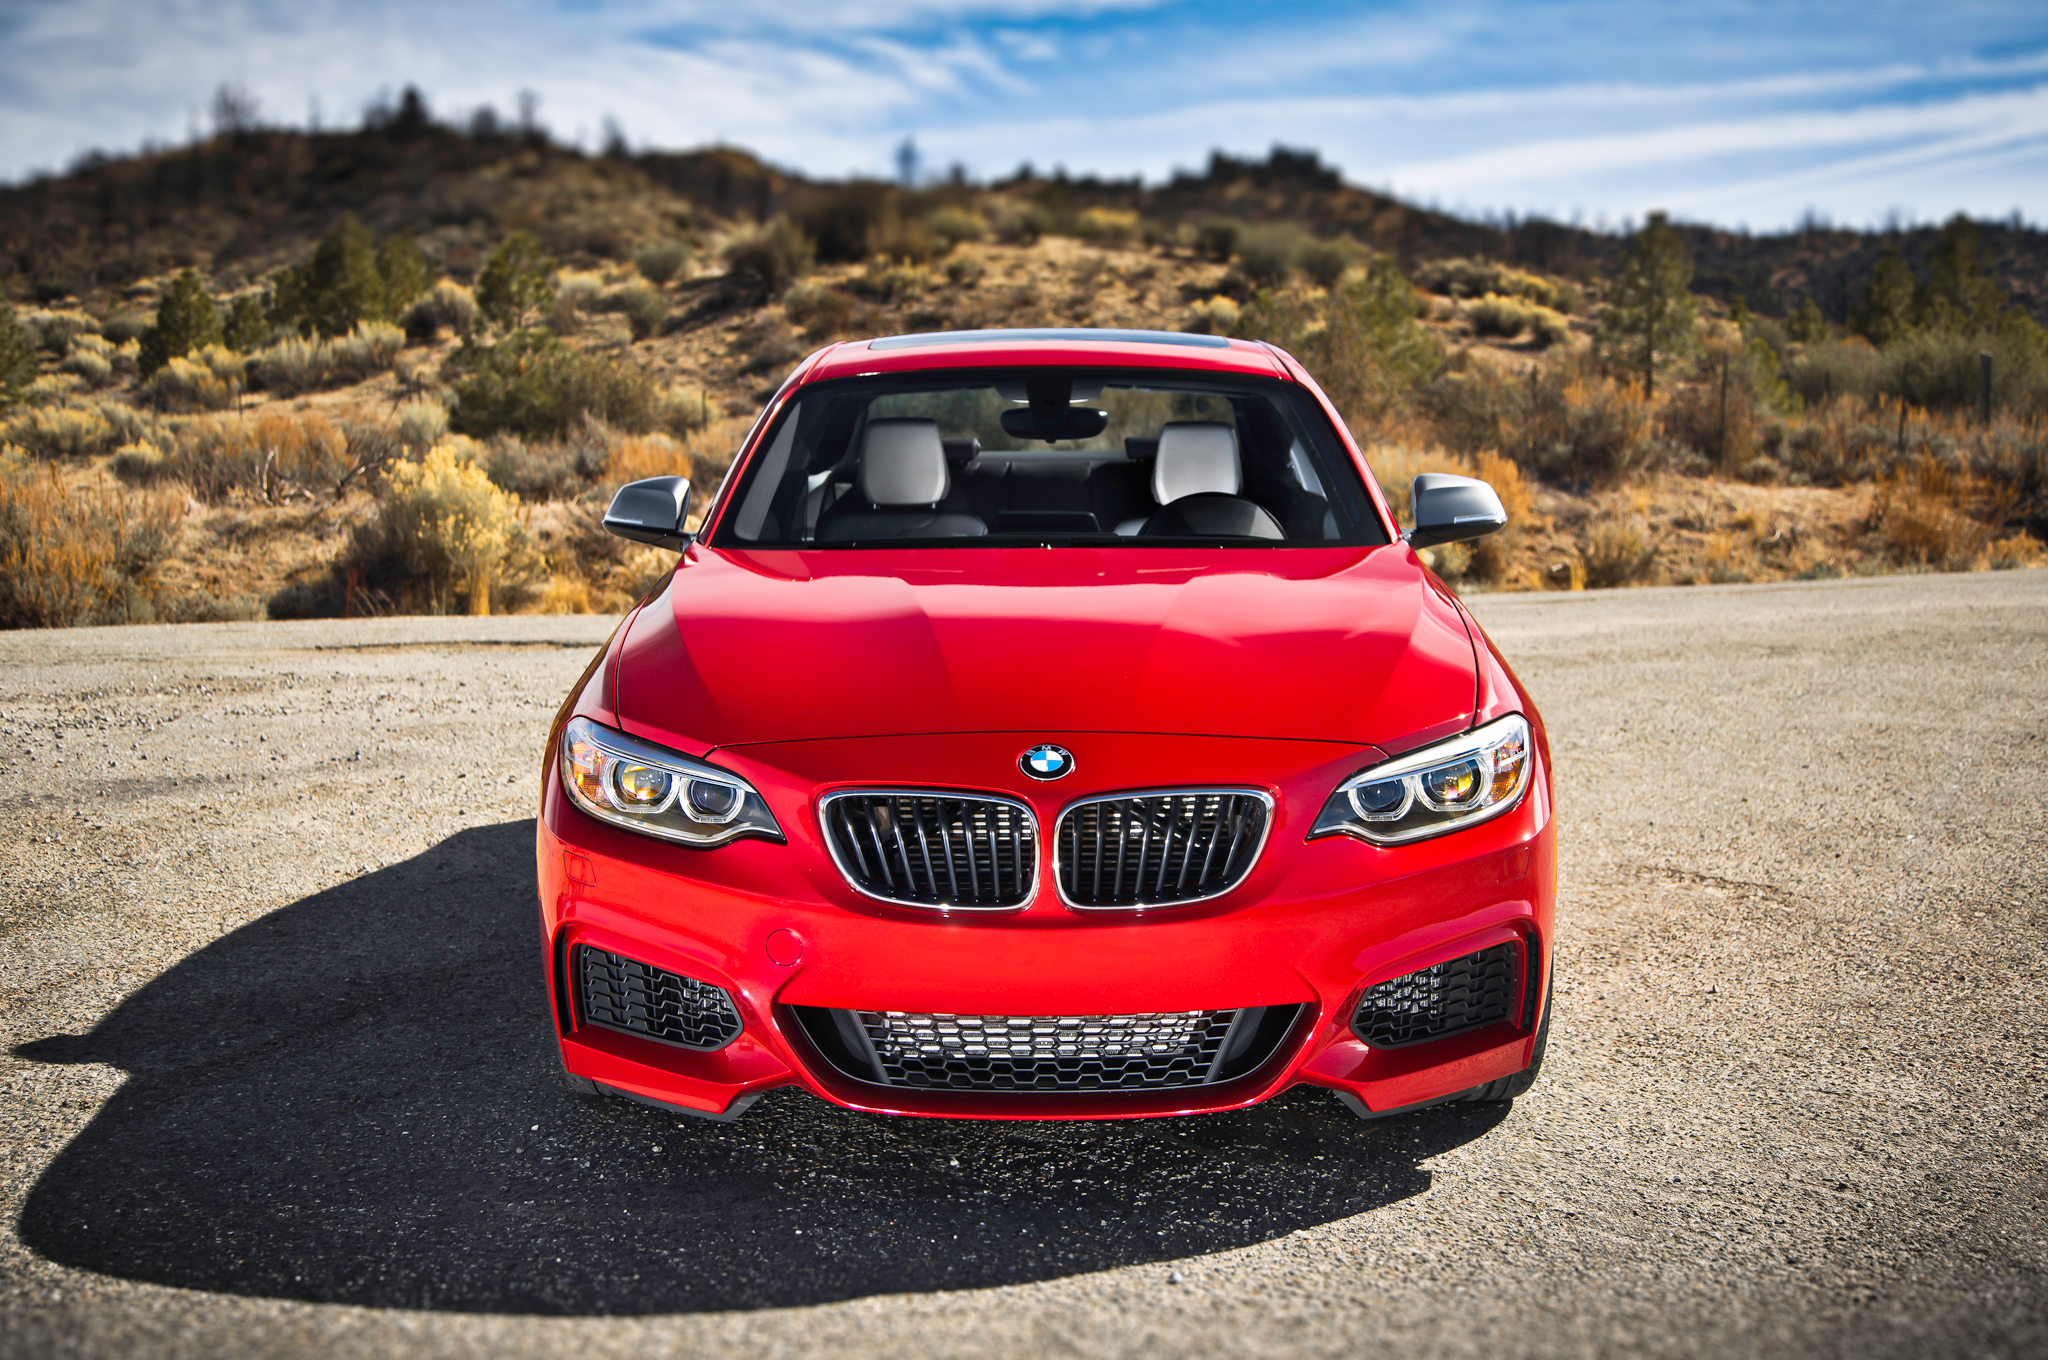 2014 BMW M235i Front View